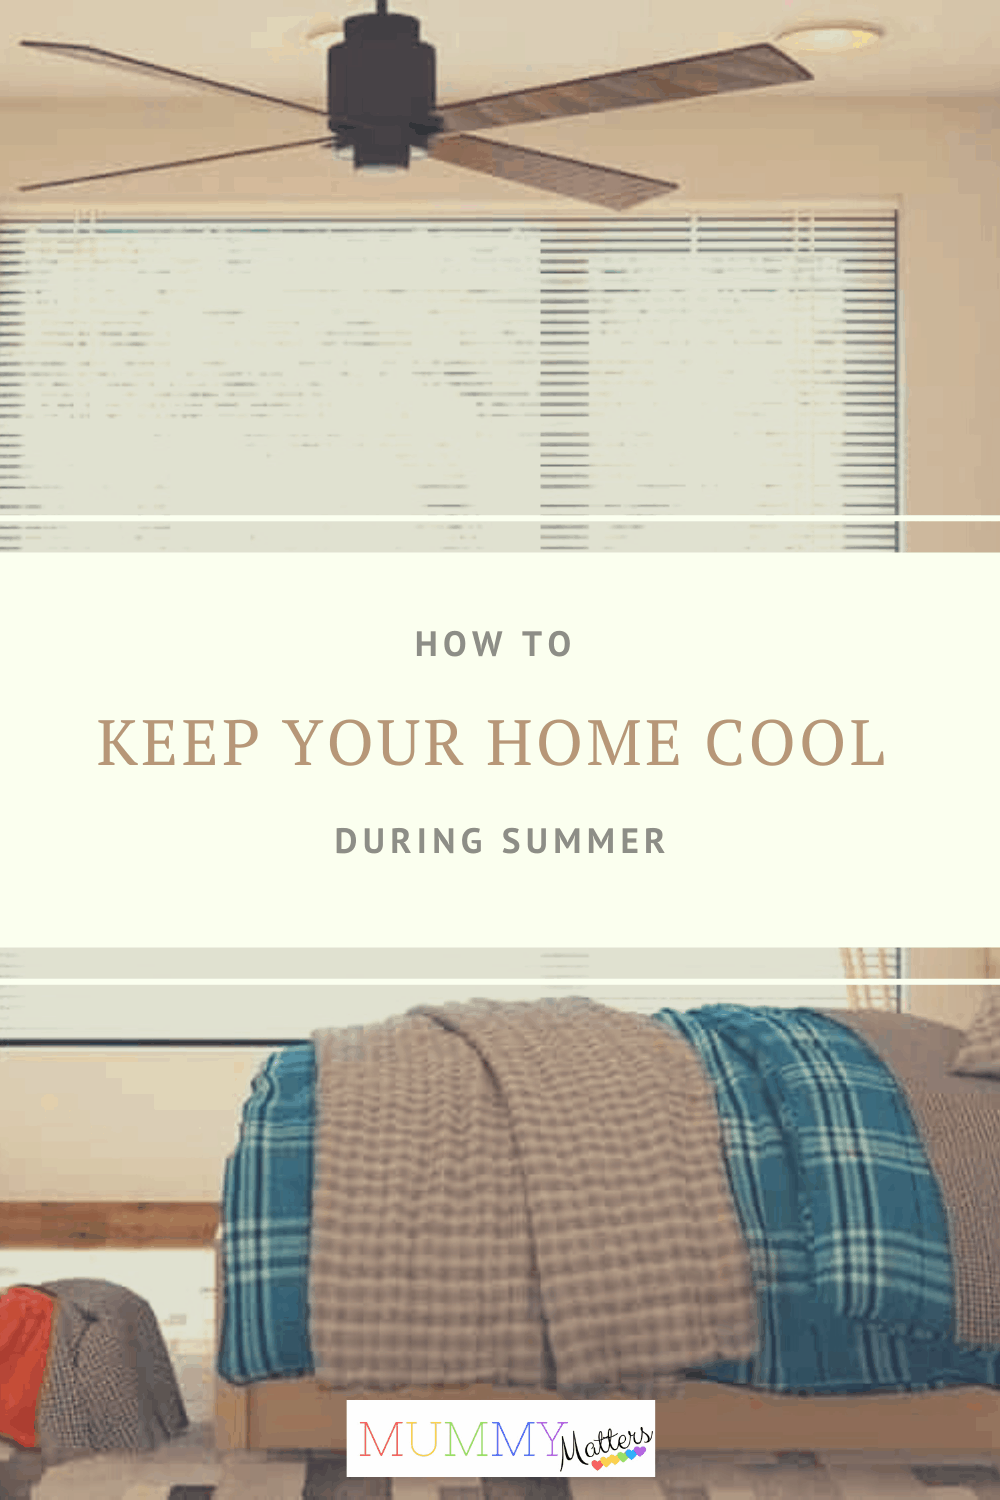 Keep your home cool during Summer